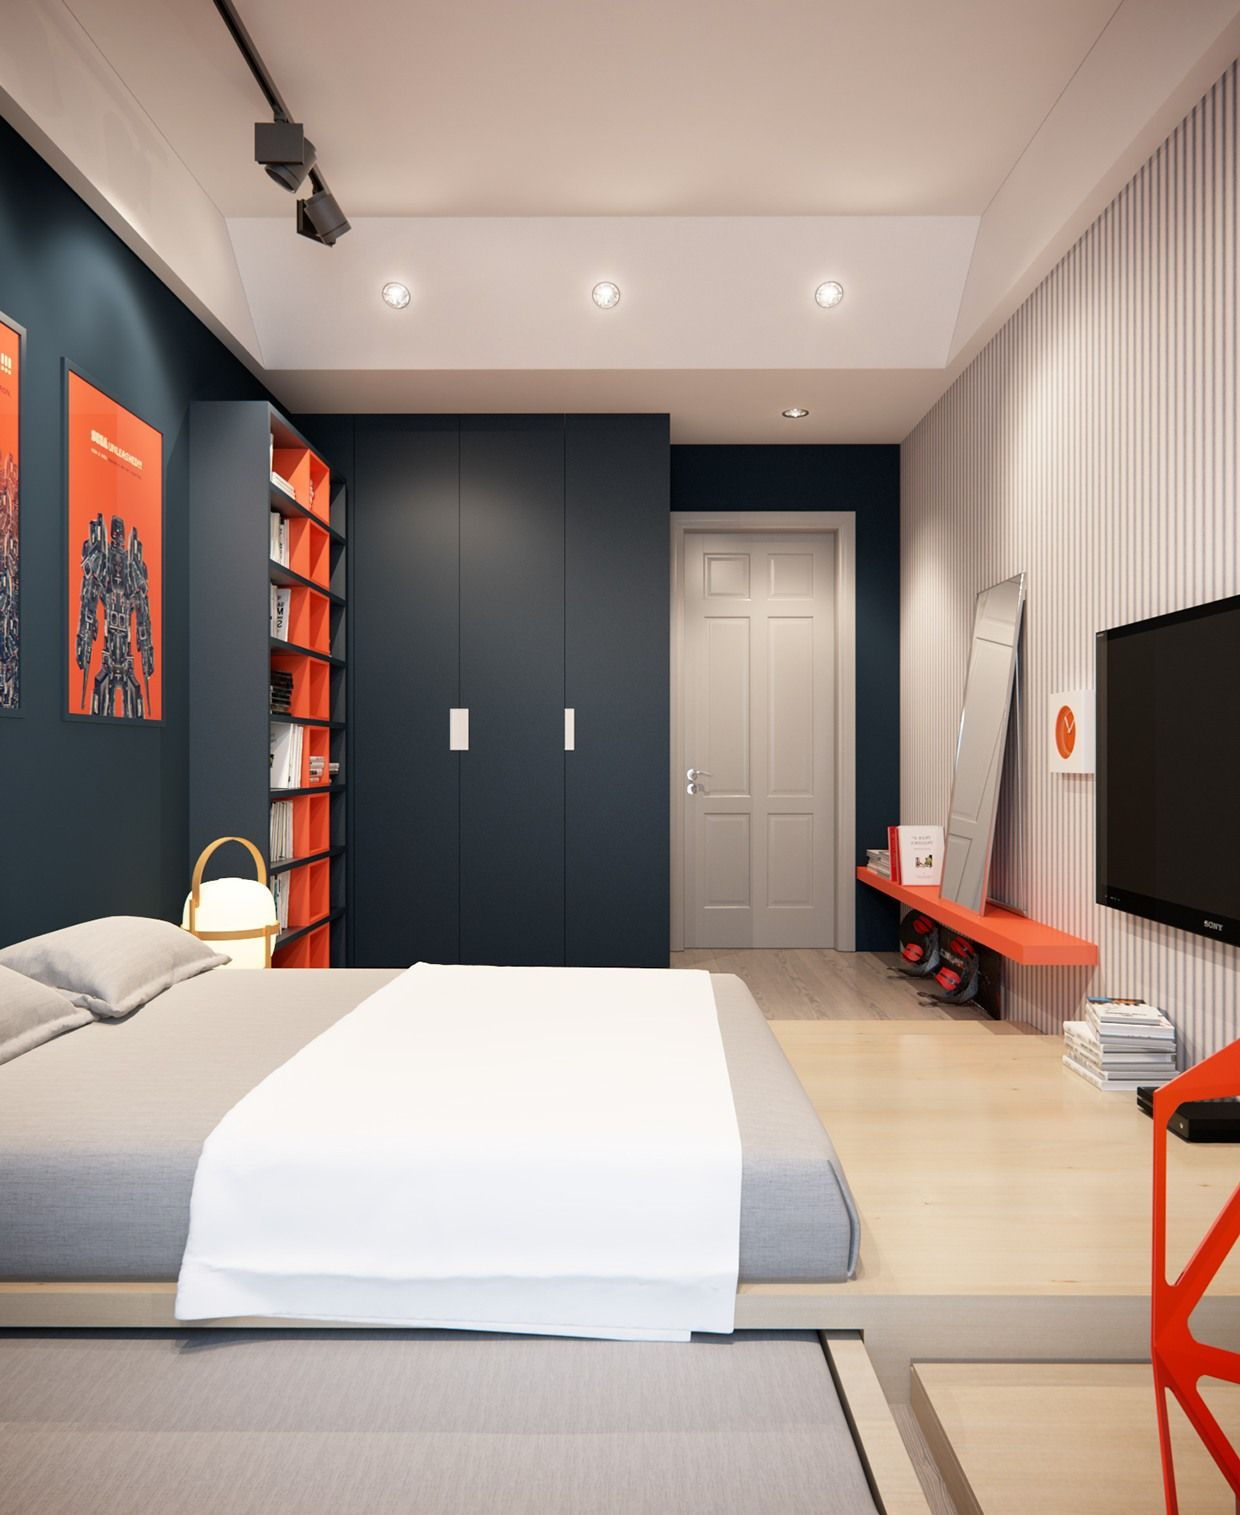 home bedroom design. Room A Modern Interior Home Design Which Combining a Classic Decor That